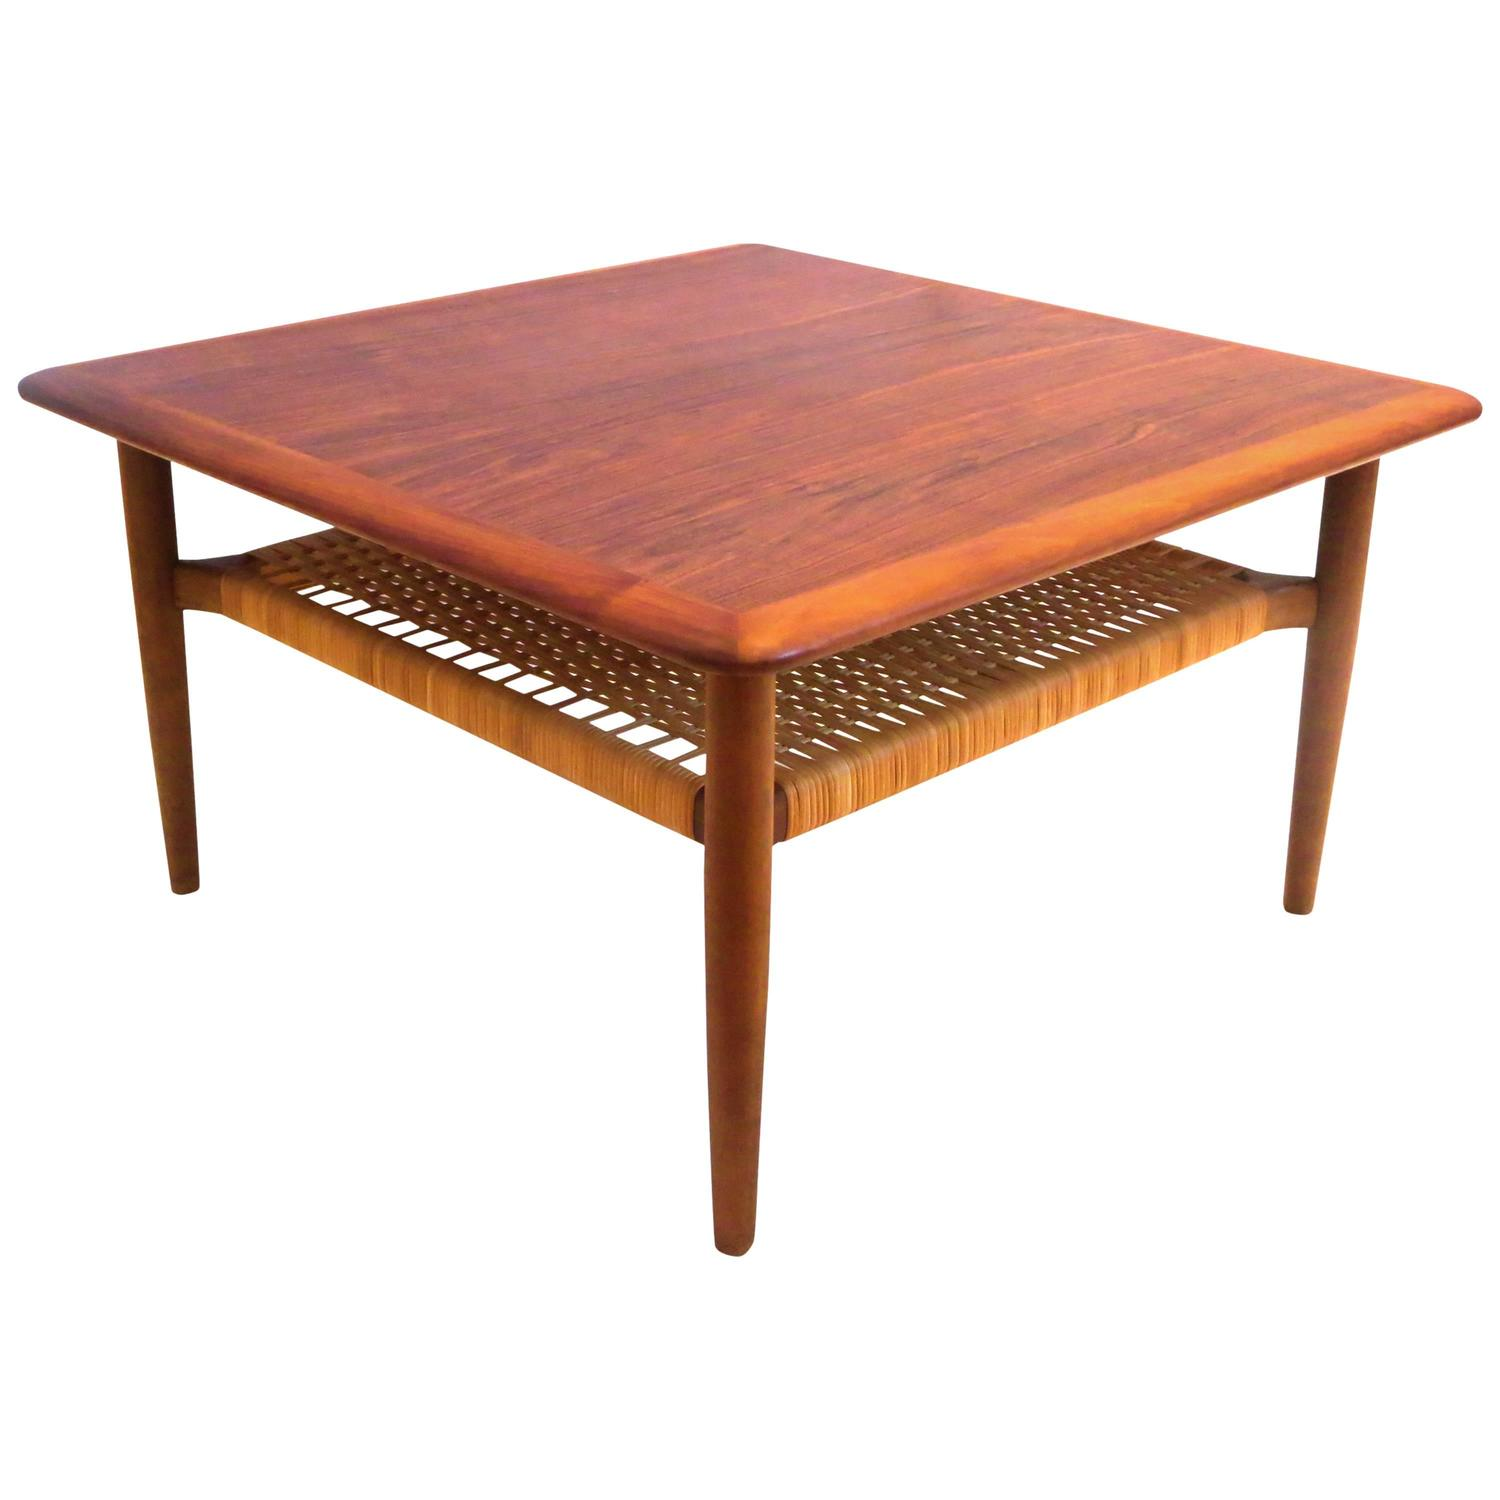 Danish modern 1950s square coffee table with caned shelf by gunnar schwartz at 1stdibs Square coffee table with shelf